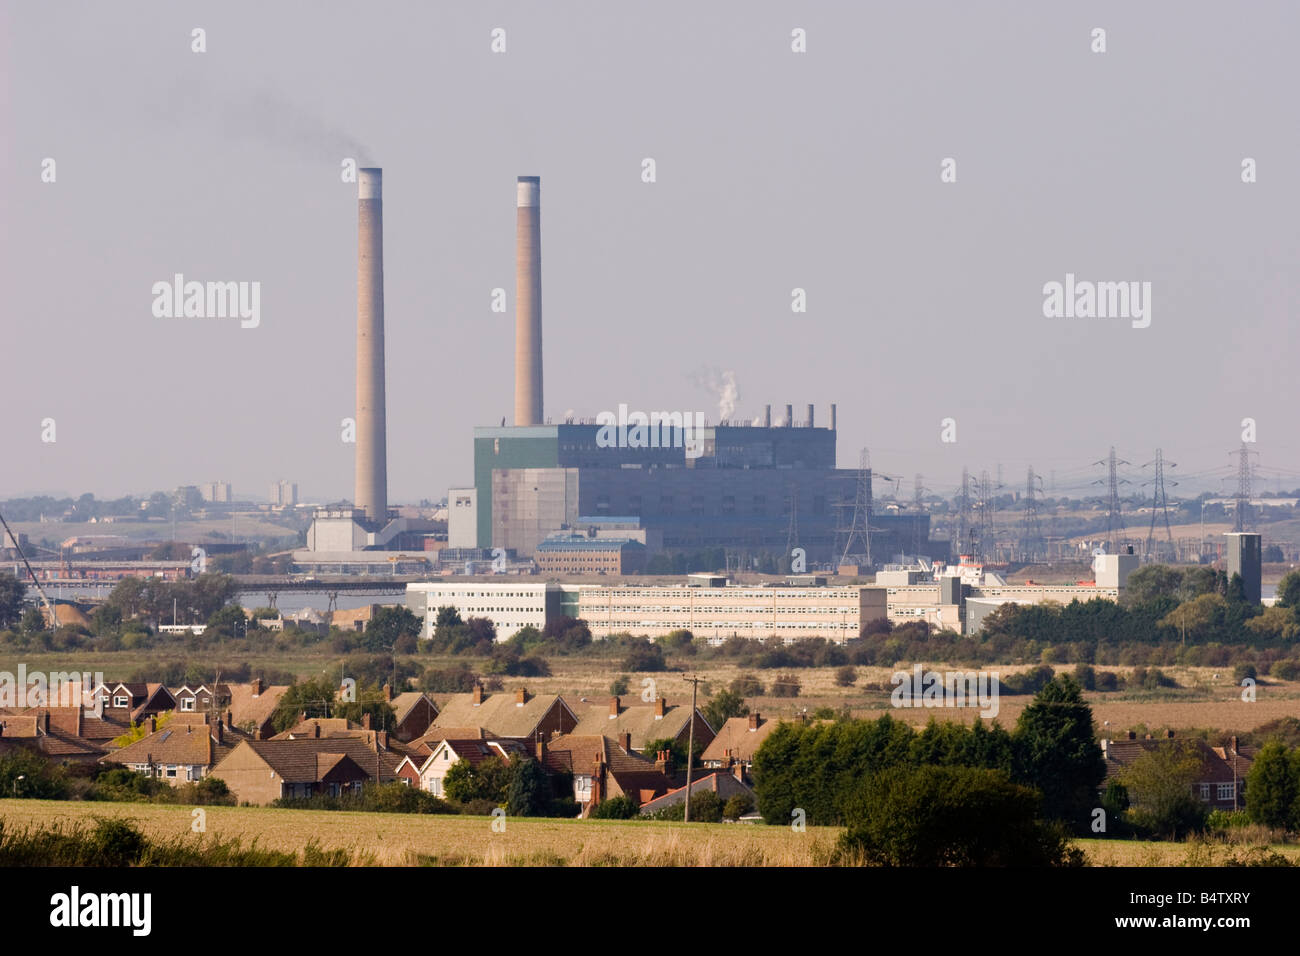 Barking coal fired power station - Stock Image